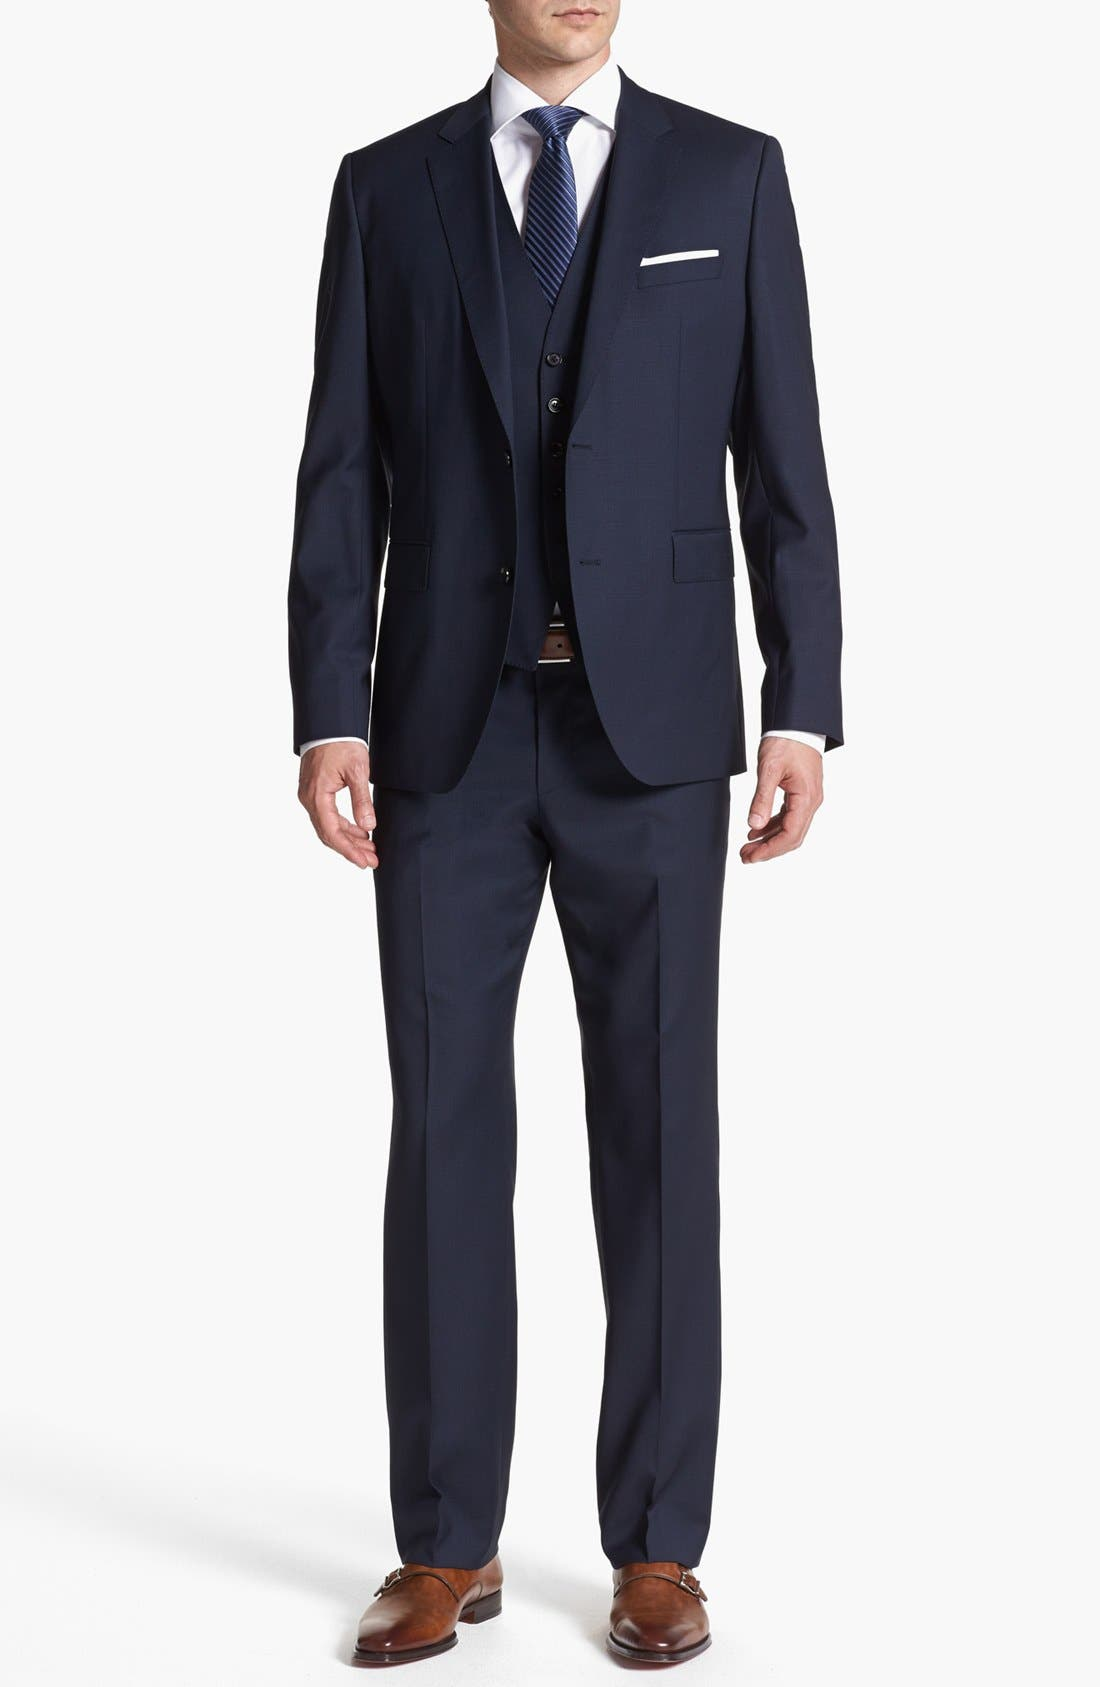 Alternate Image 1 Selected - BOSS HUGO BOSS 'James/Sharp' Trim Fit Three-Piece Suit